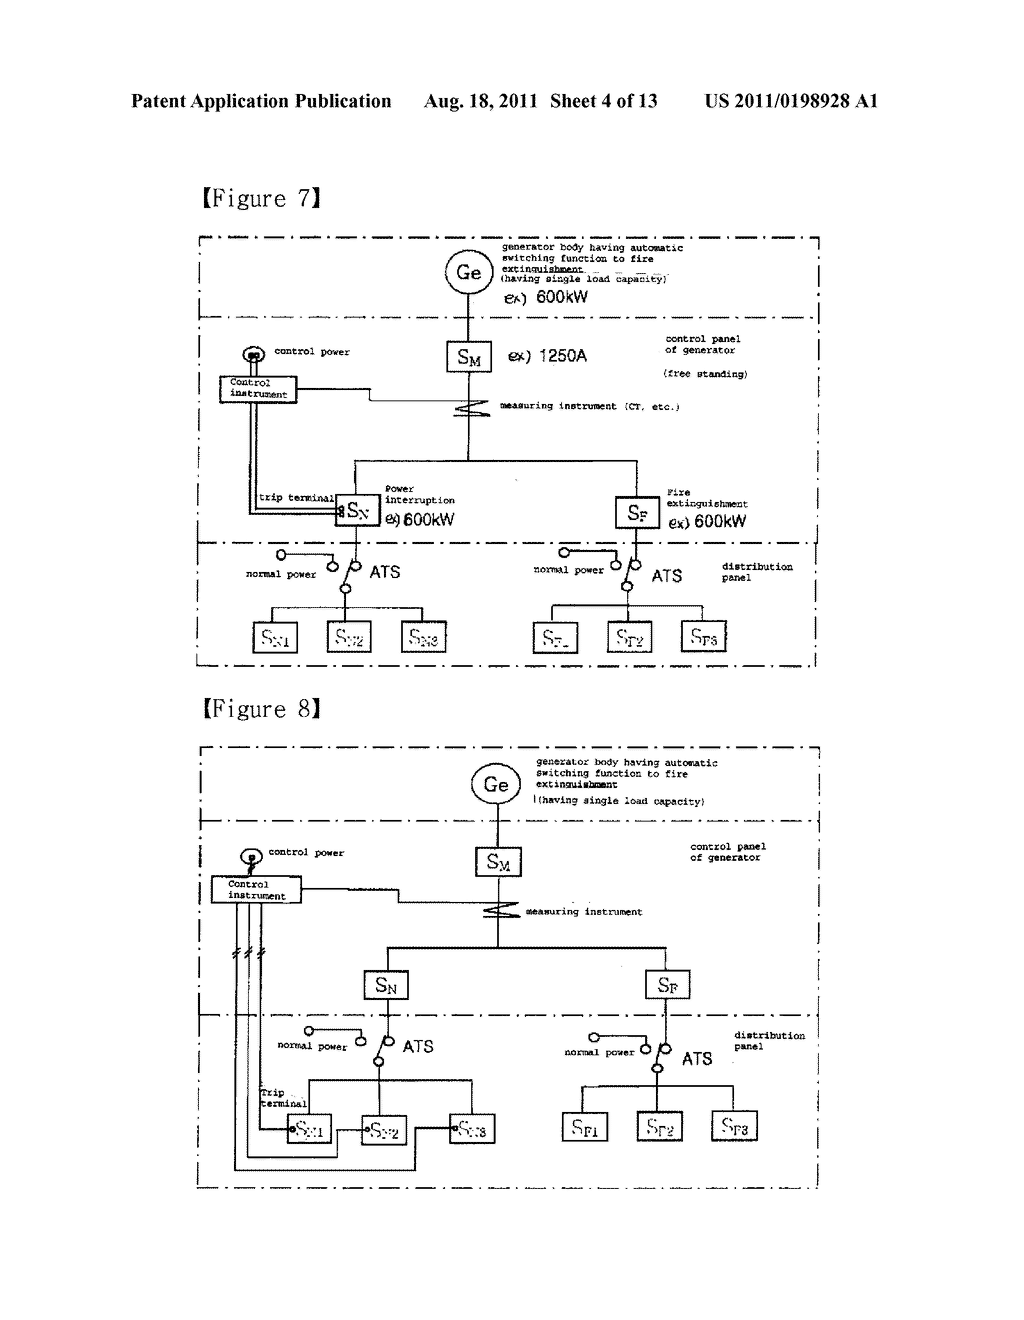 hight resolution of emergency generator power system with reserved fire protection power diagram schematic and image 05